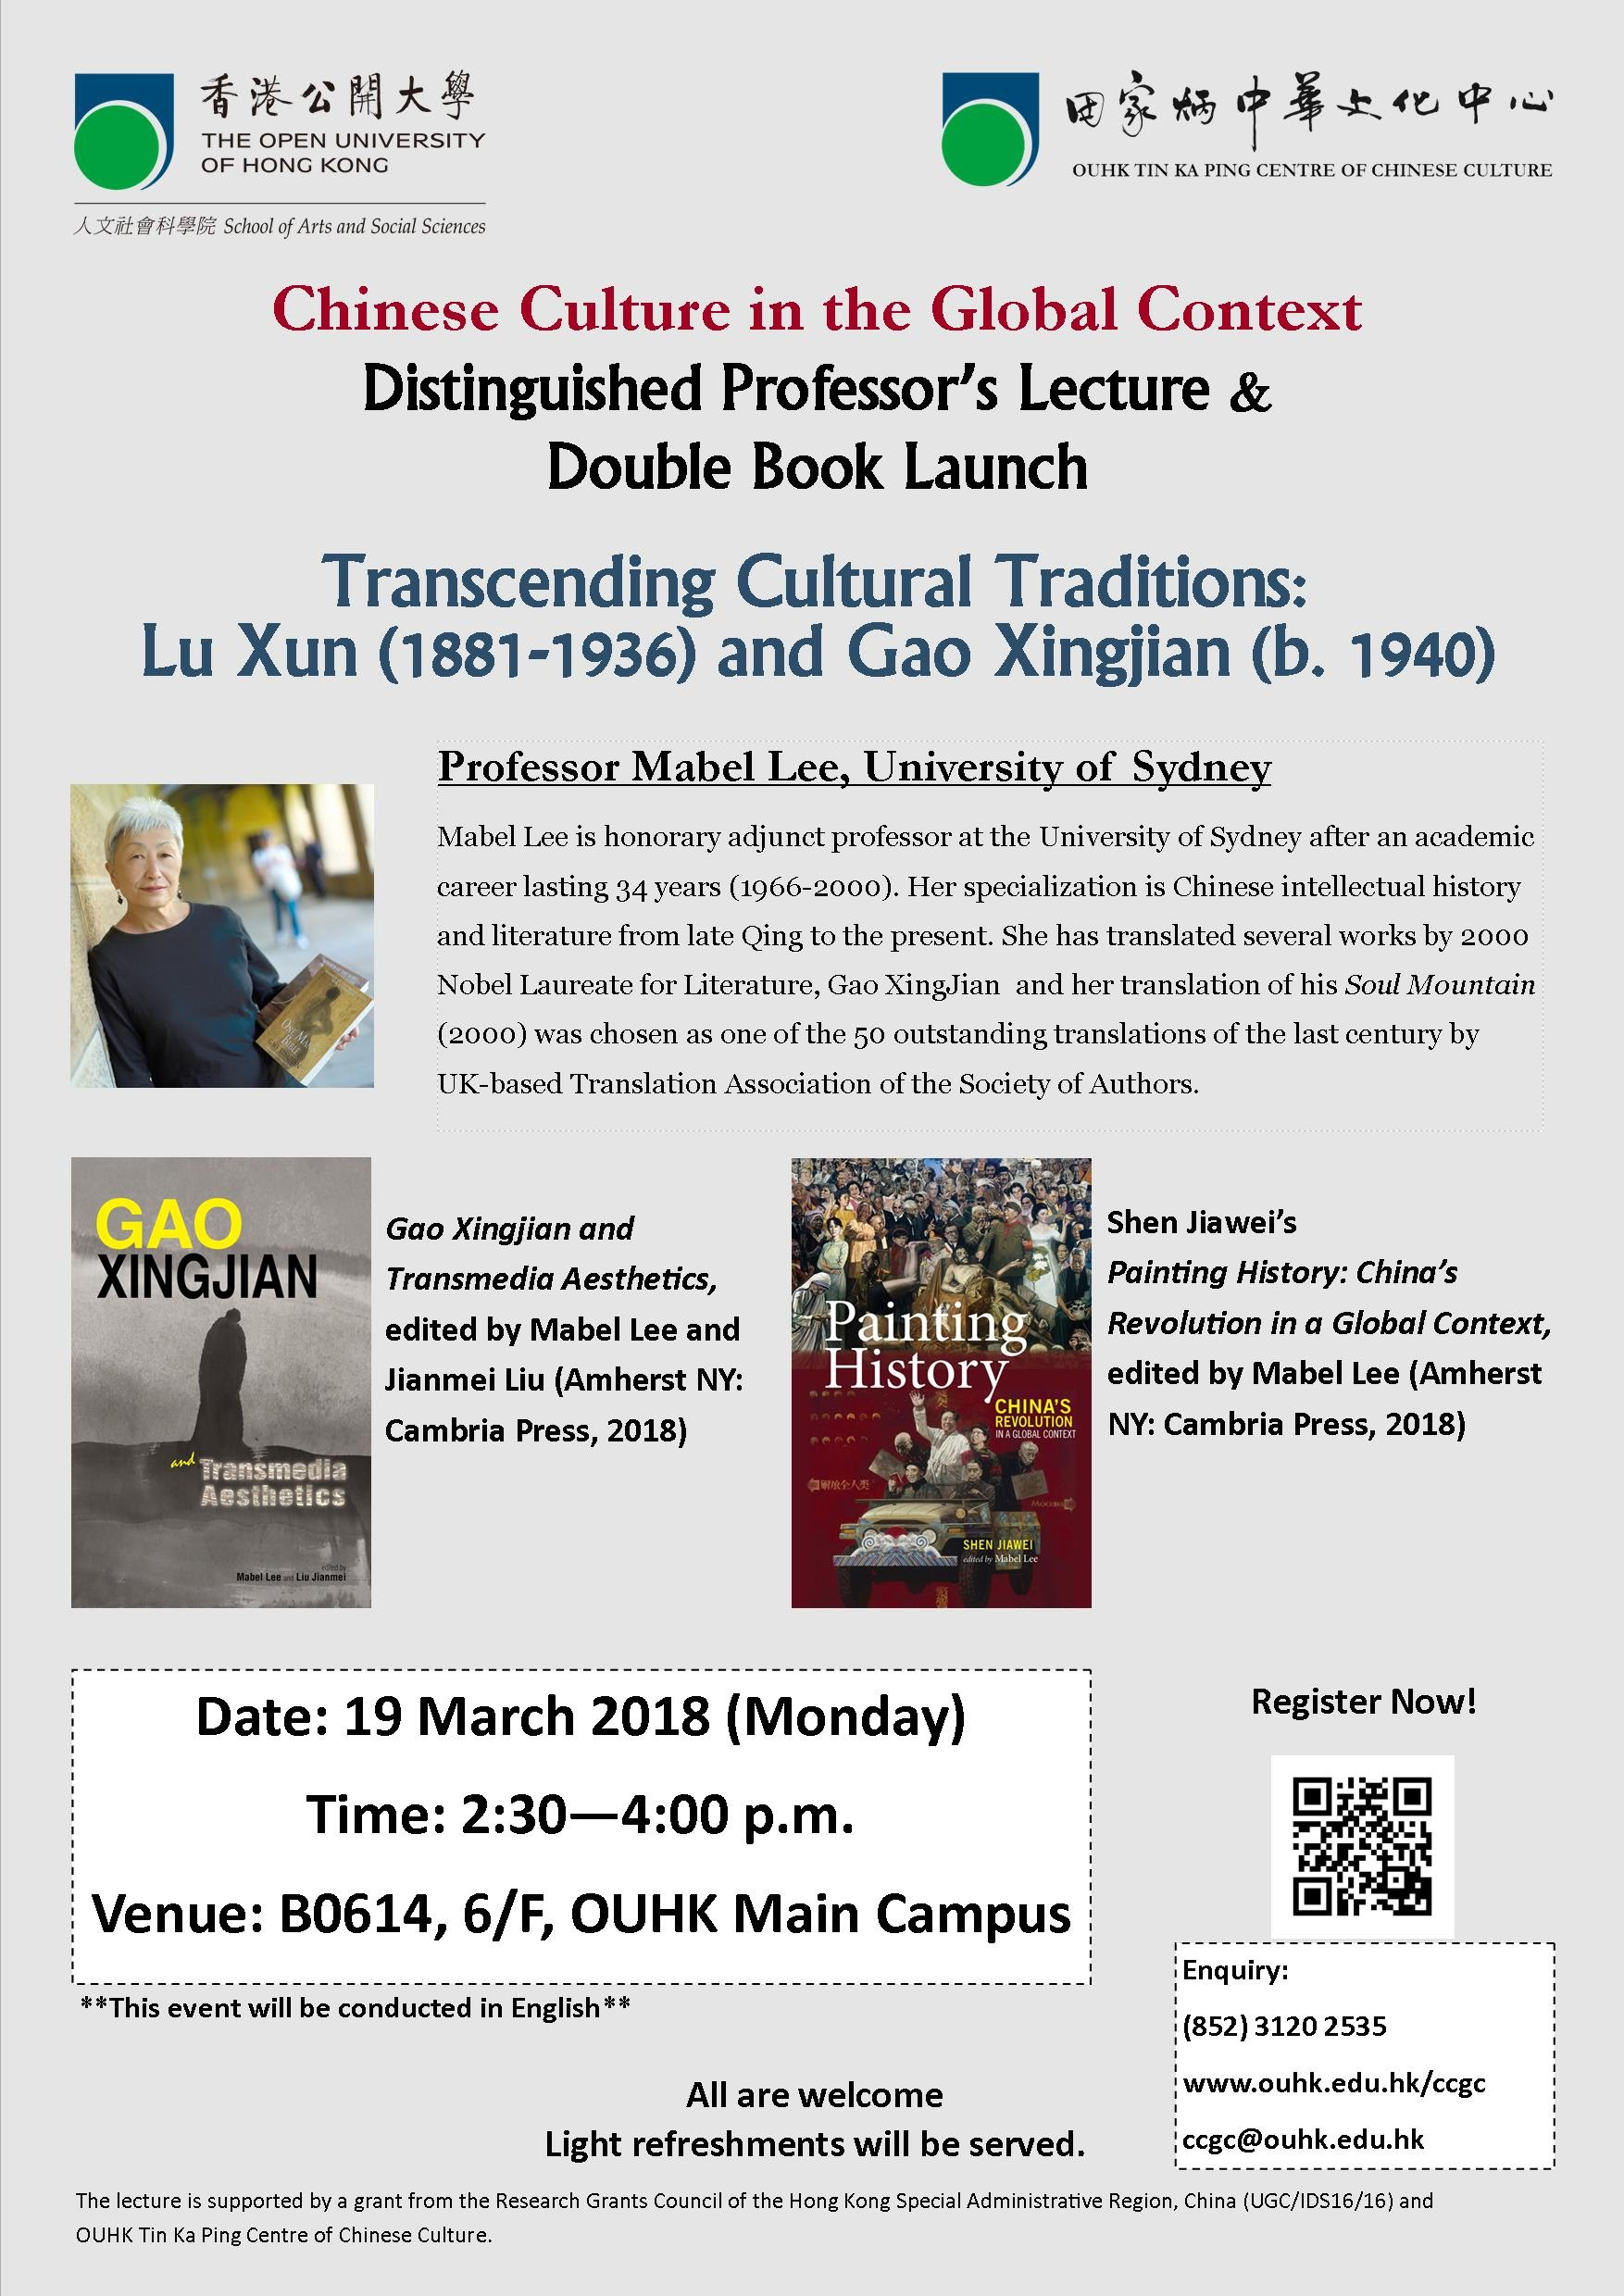 The Open University of Hong Kong: Chinese Culture in the